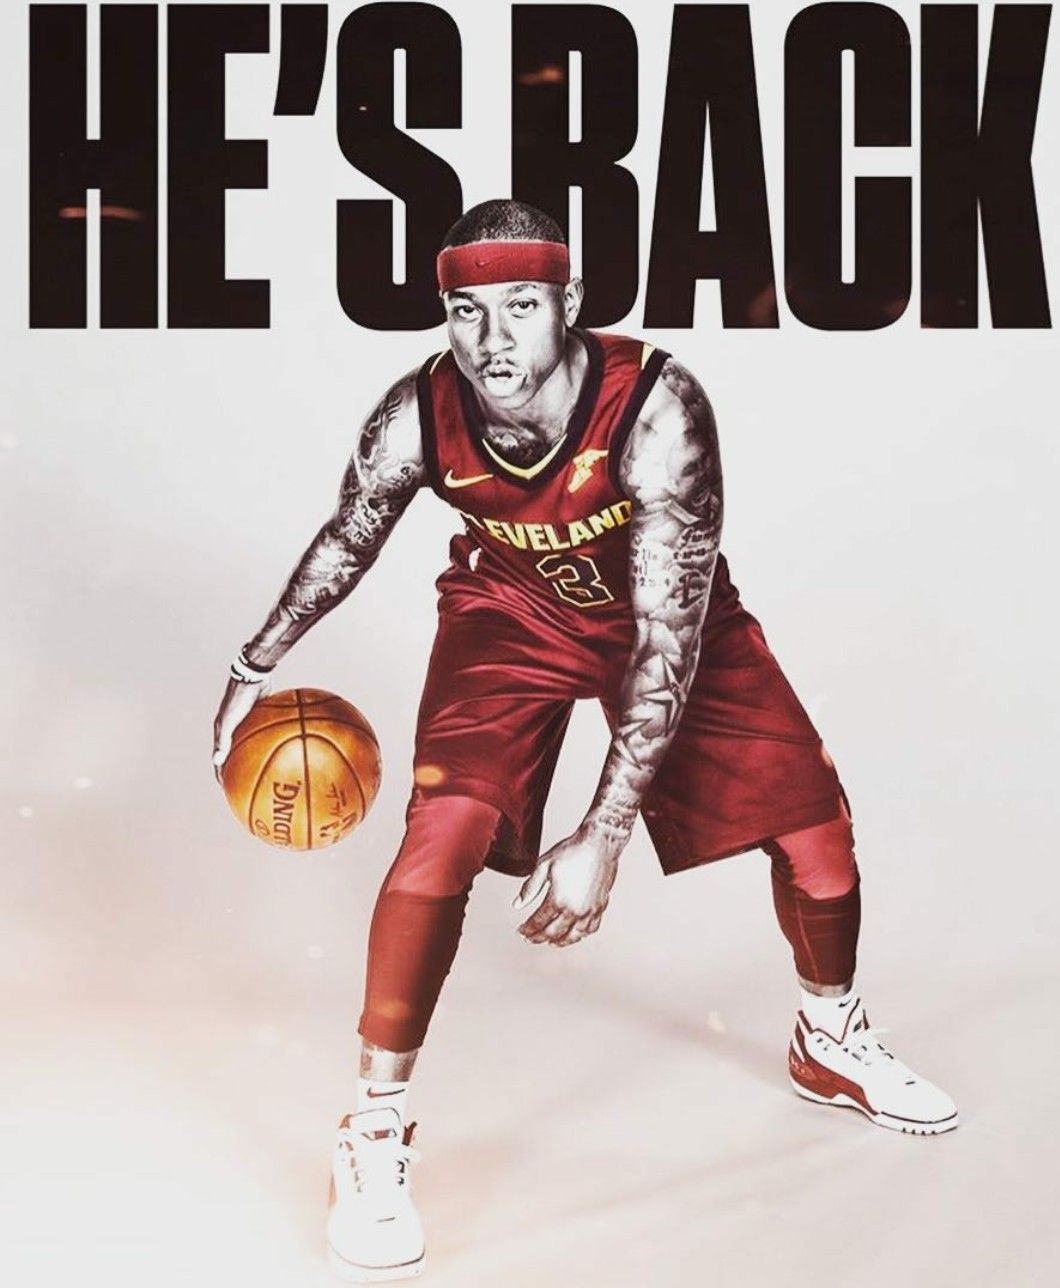 Isaiah Thomas is back!!! Cleveland Cavaliers